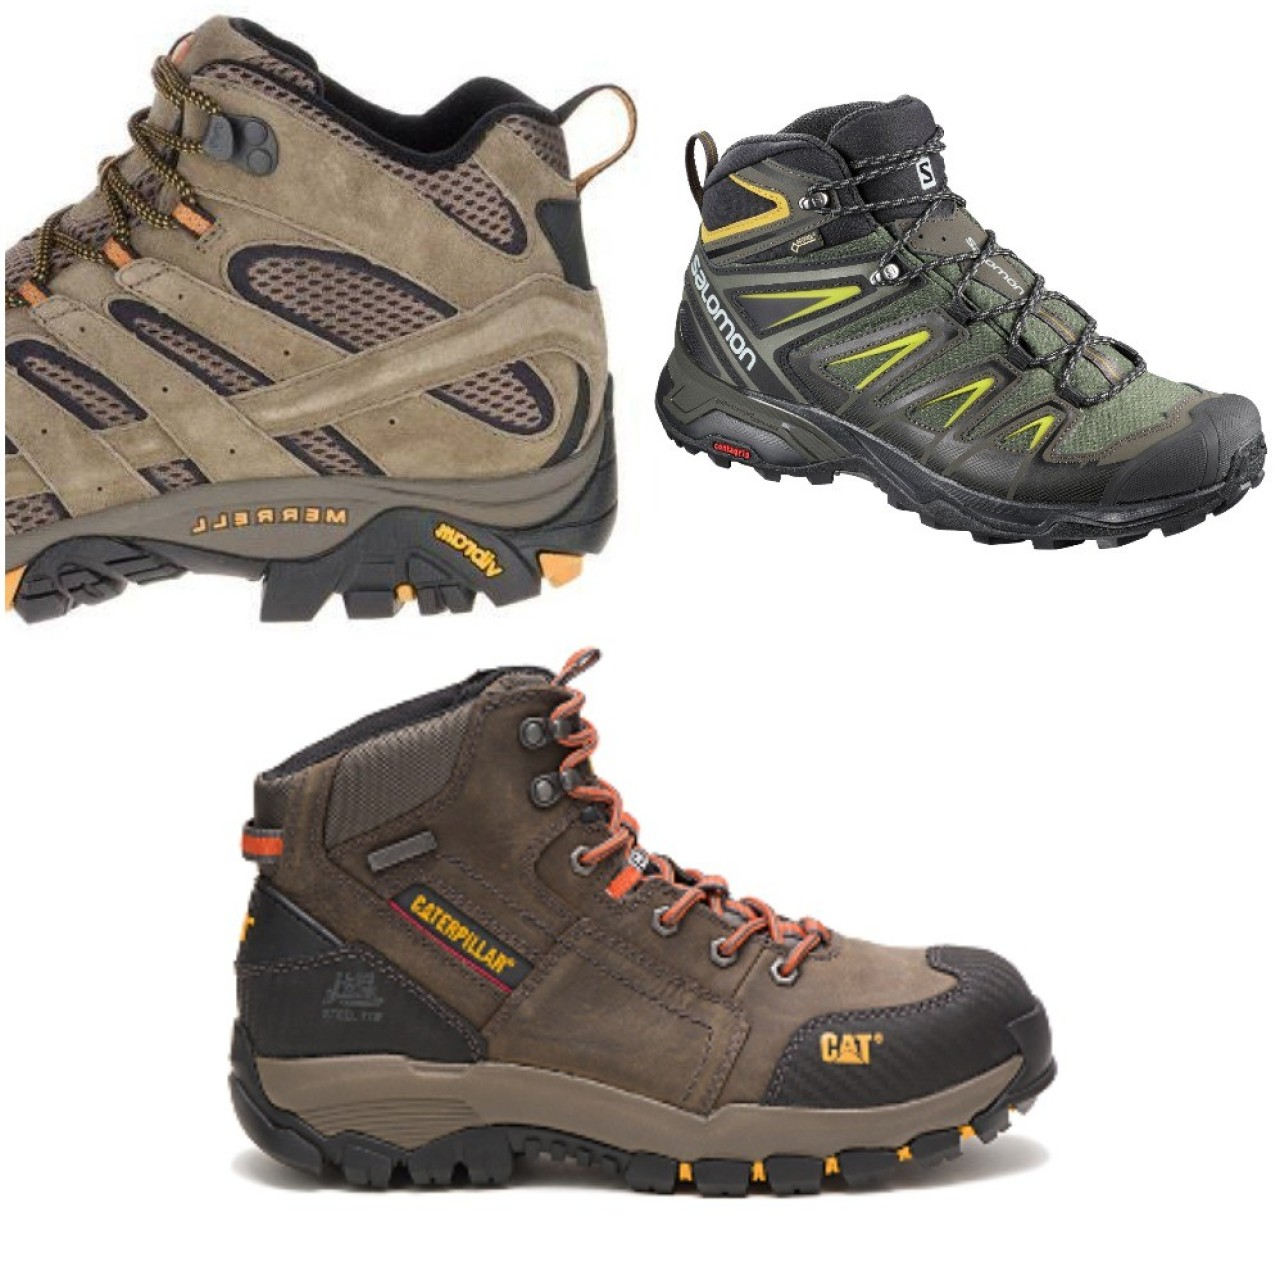 77799929f6 What hiking shoes should I buy in 2019? Salomon, Merrell ...